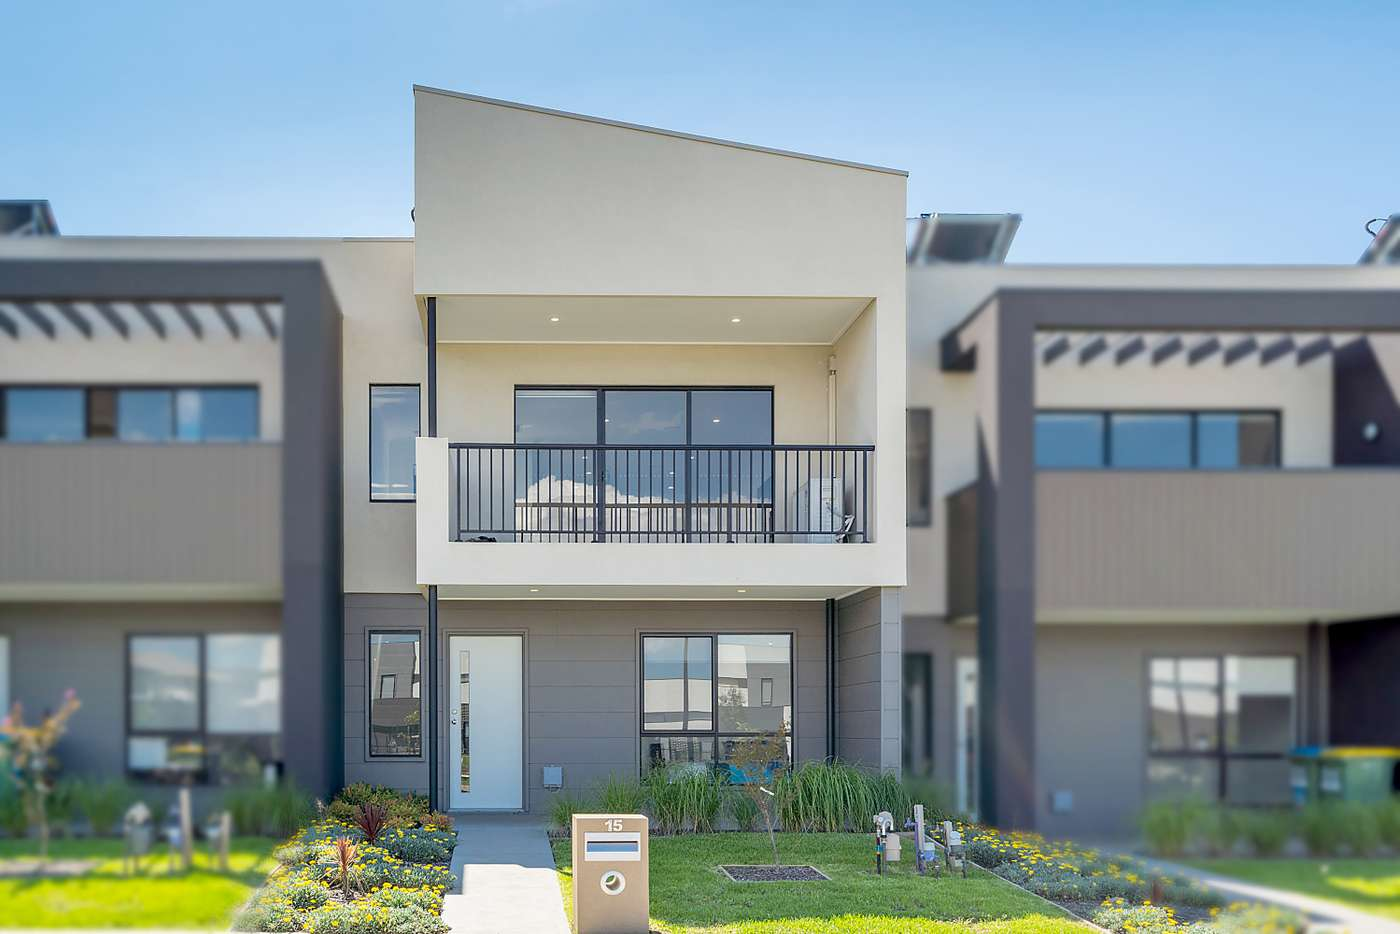 Main view of Homely house listing, 15 Regatta Drive, Craigieburn VIC 3064